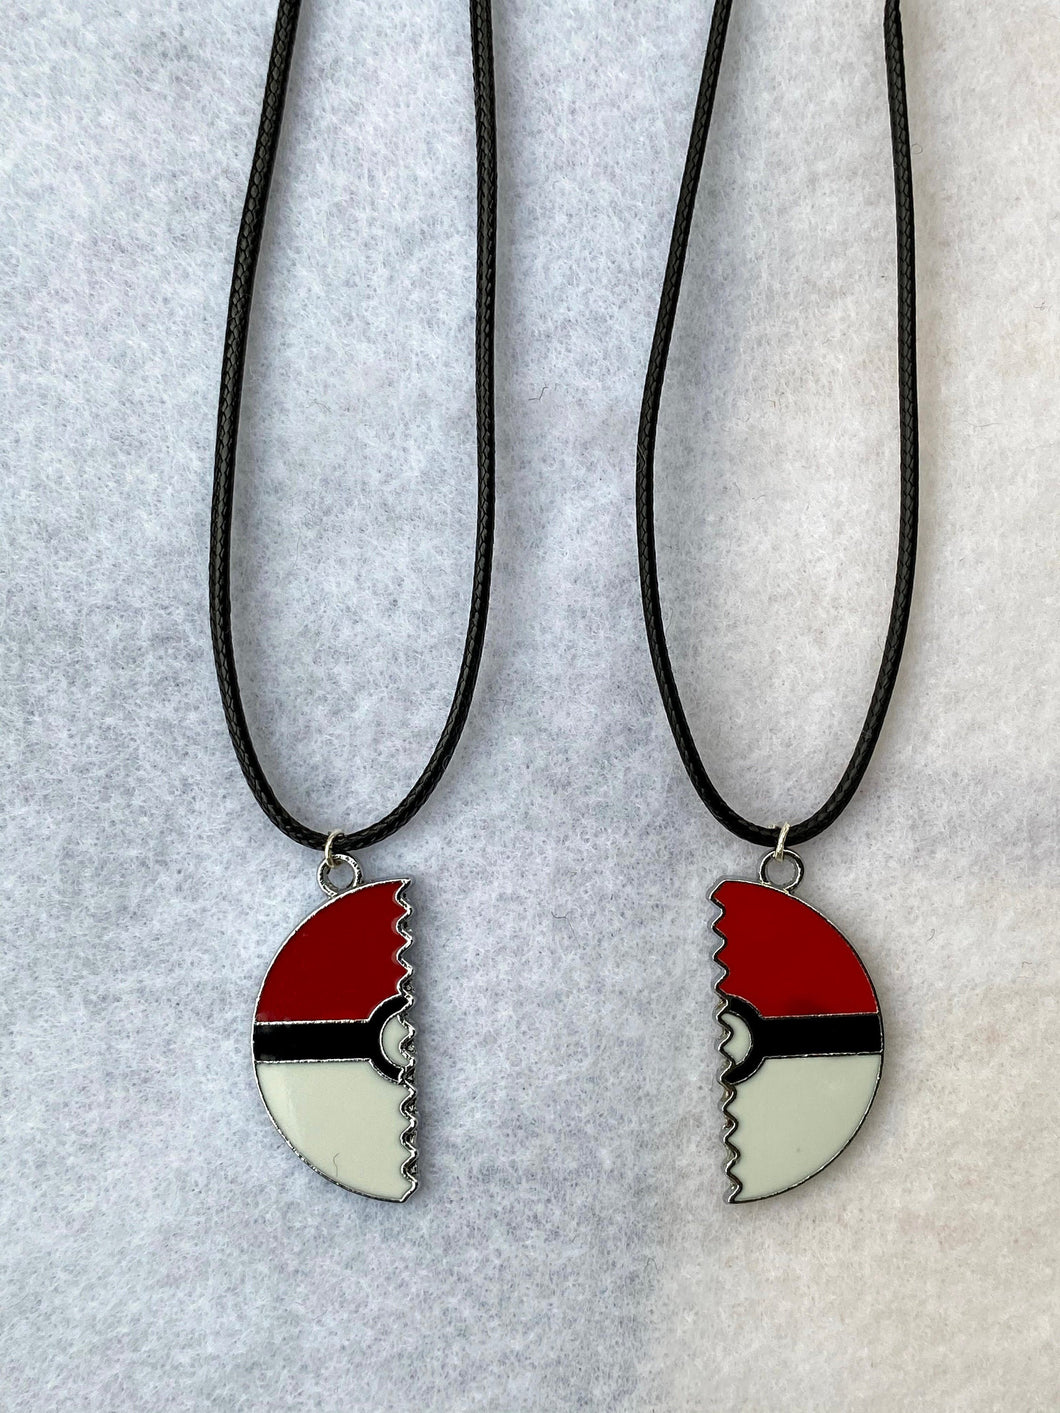 Best Friend Necklaces Pokemon Inspired Necklace Set